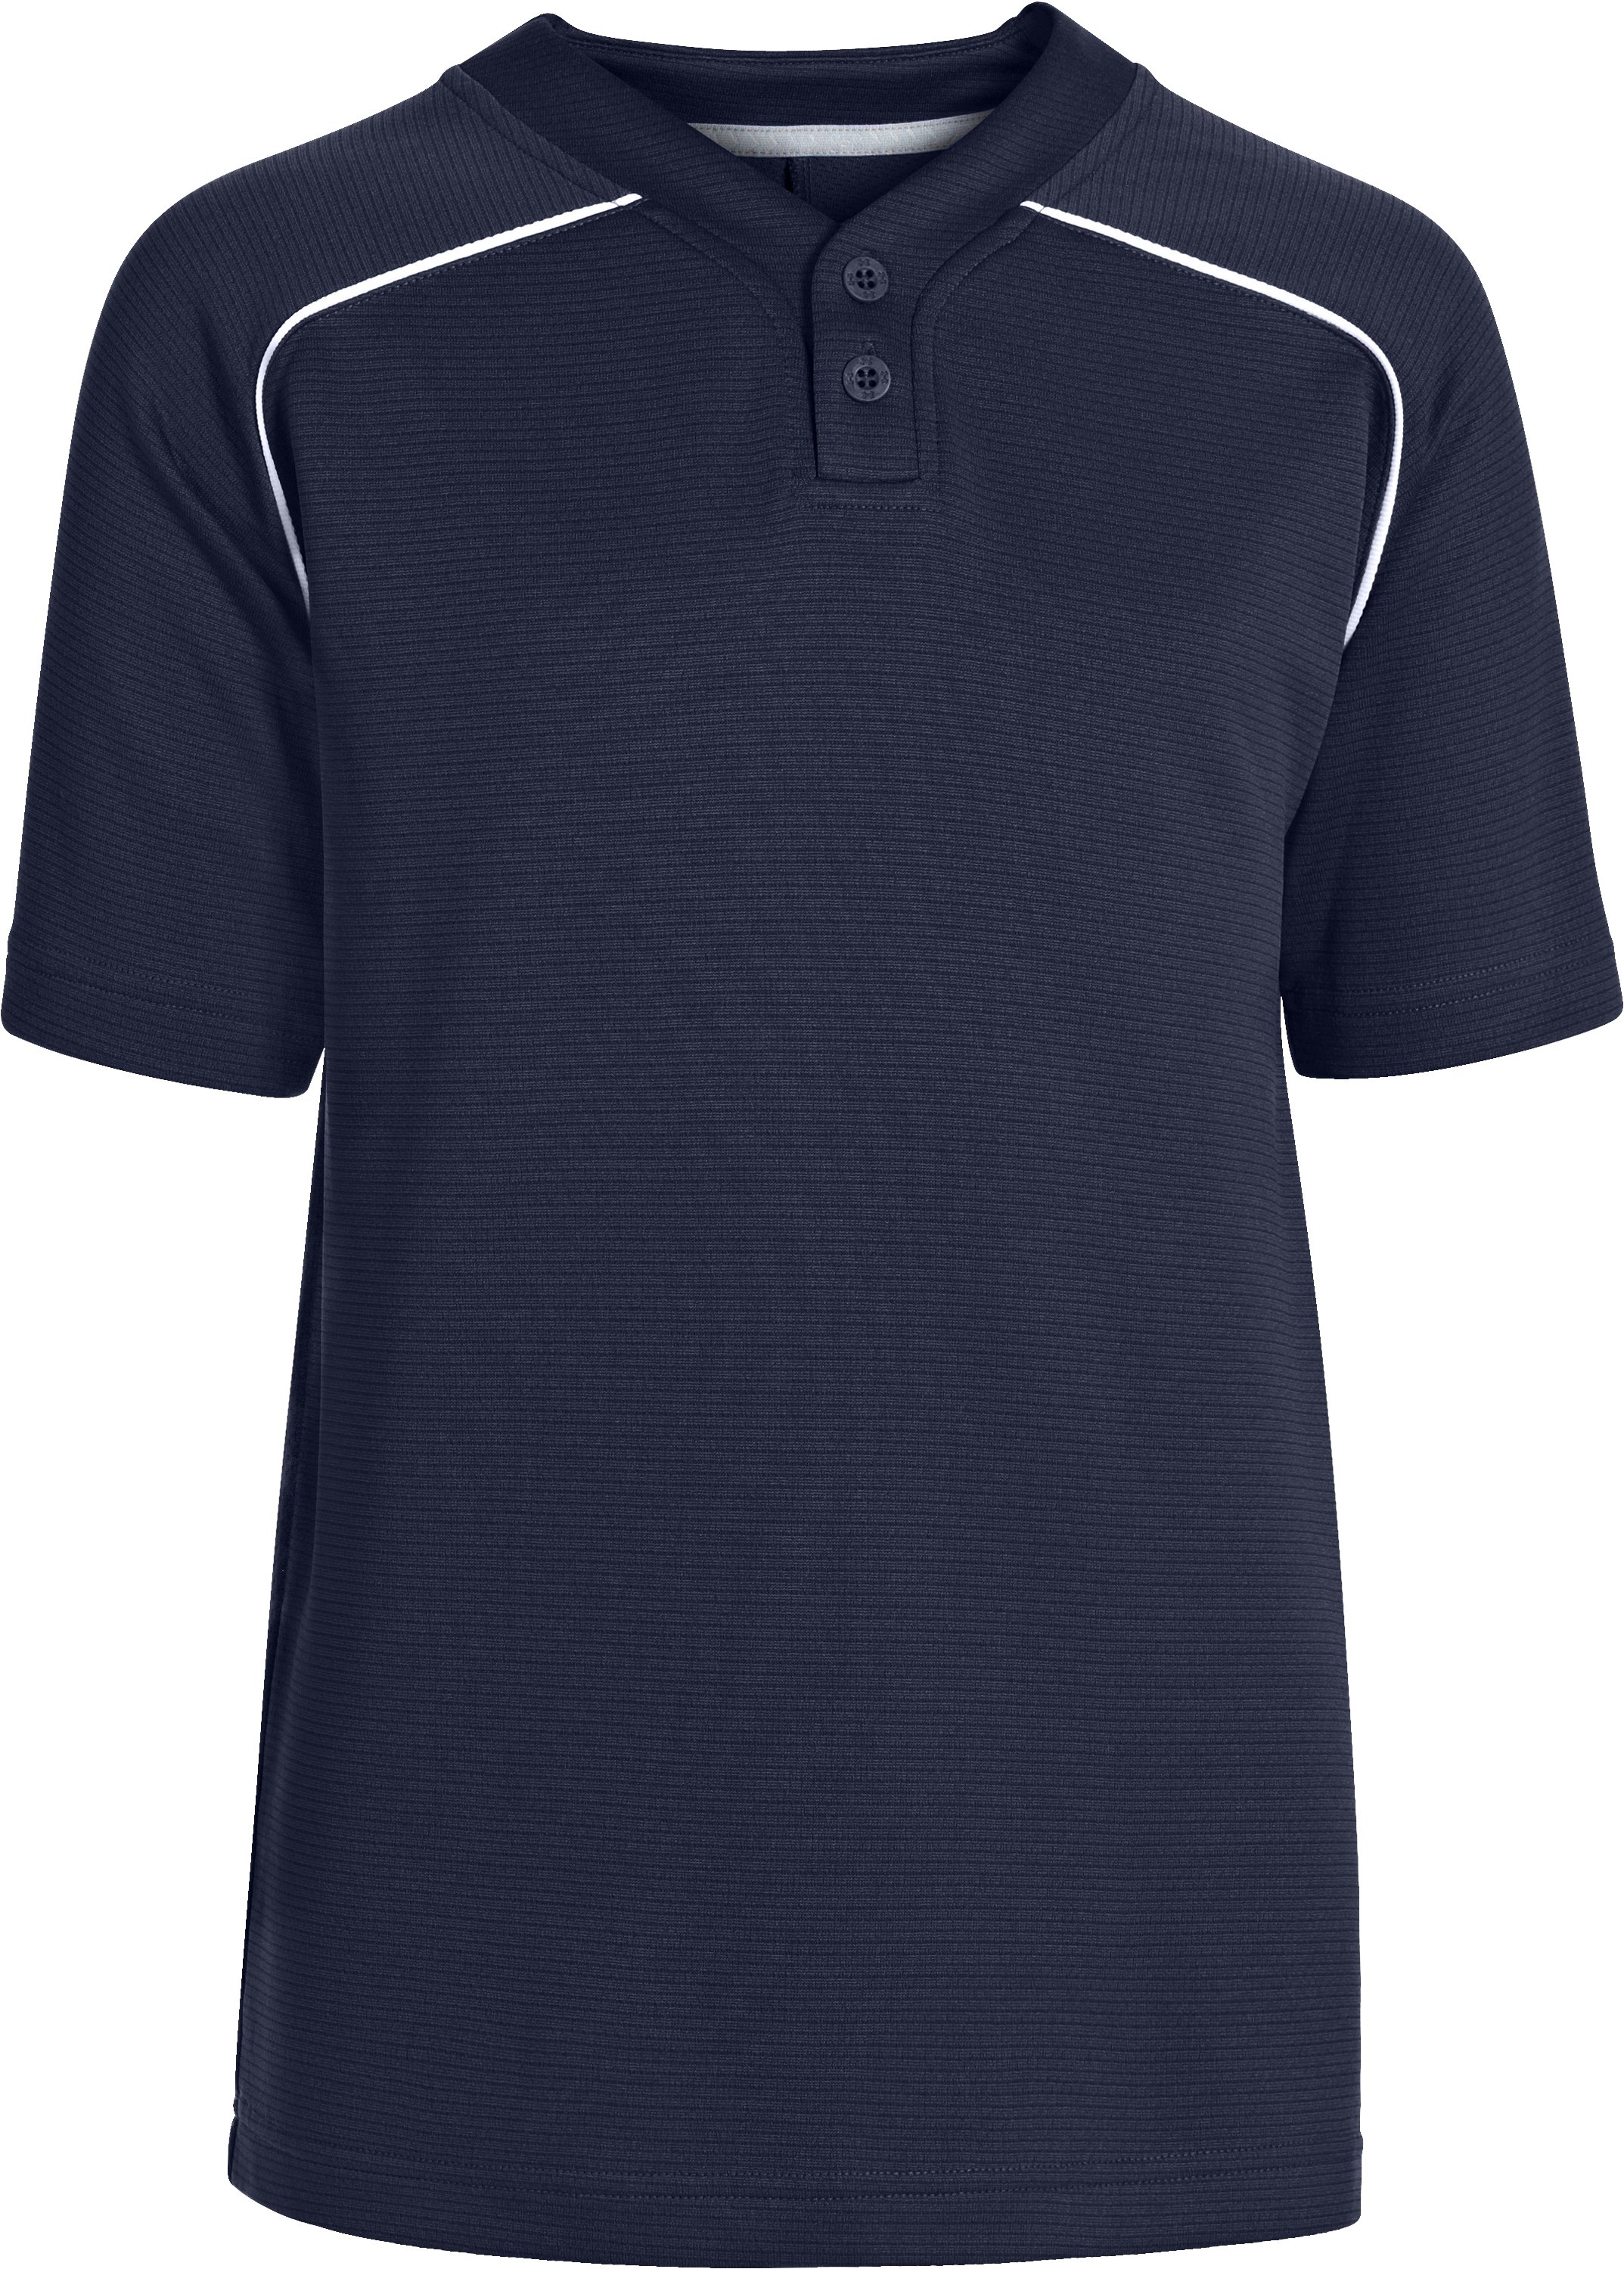 Boys' UA Landsdown II Baseball Jersey, Midnight Navy, zoomed image